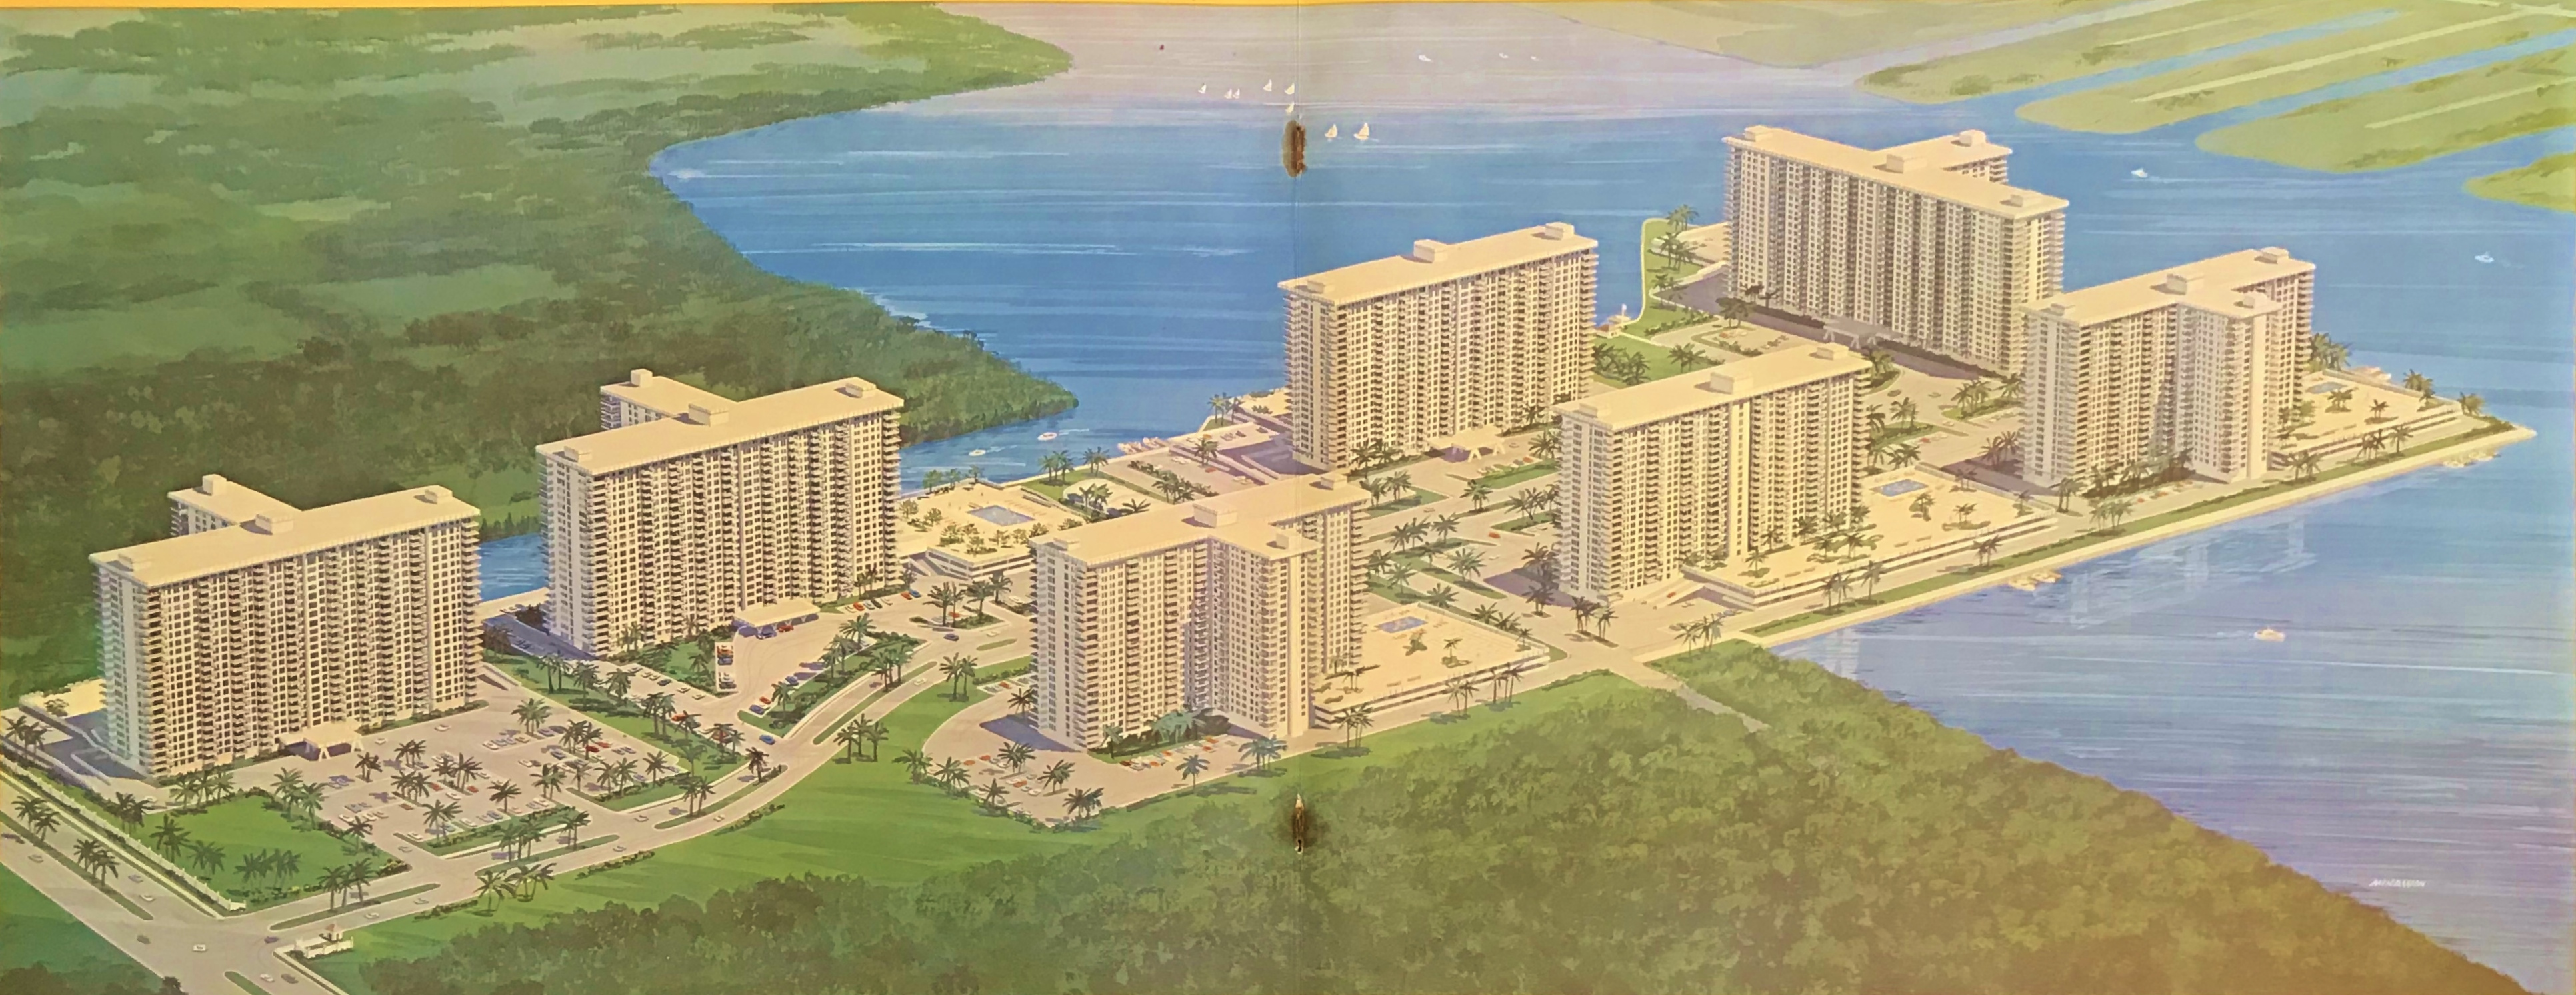 Winston Towers Sunny Isles Beach Site Plan by developer